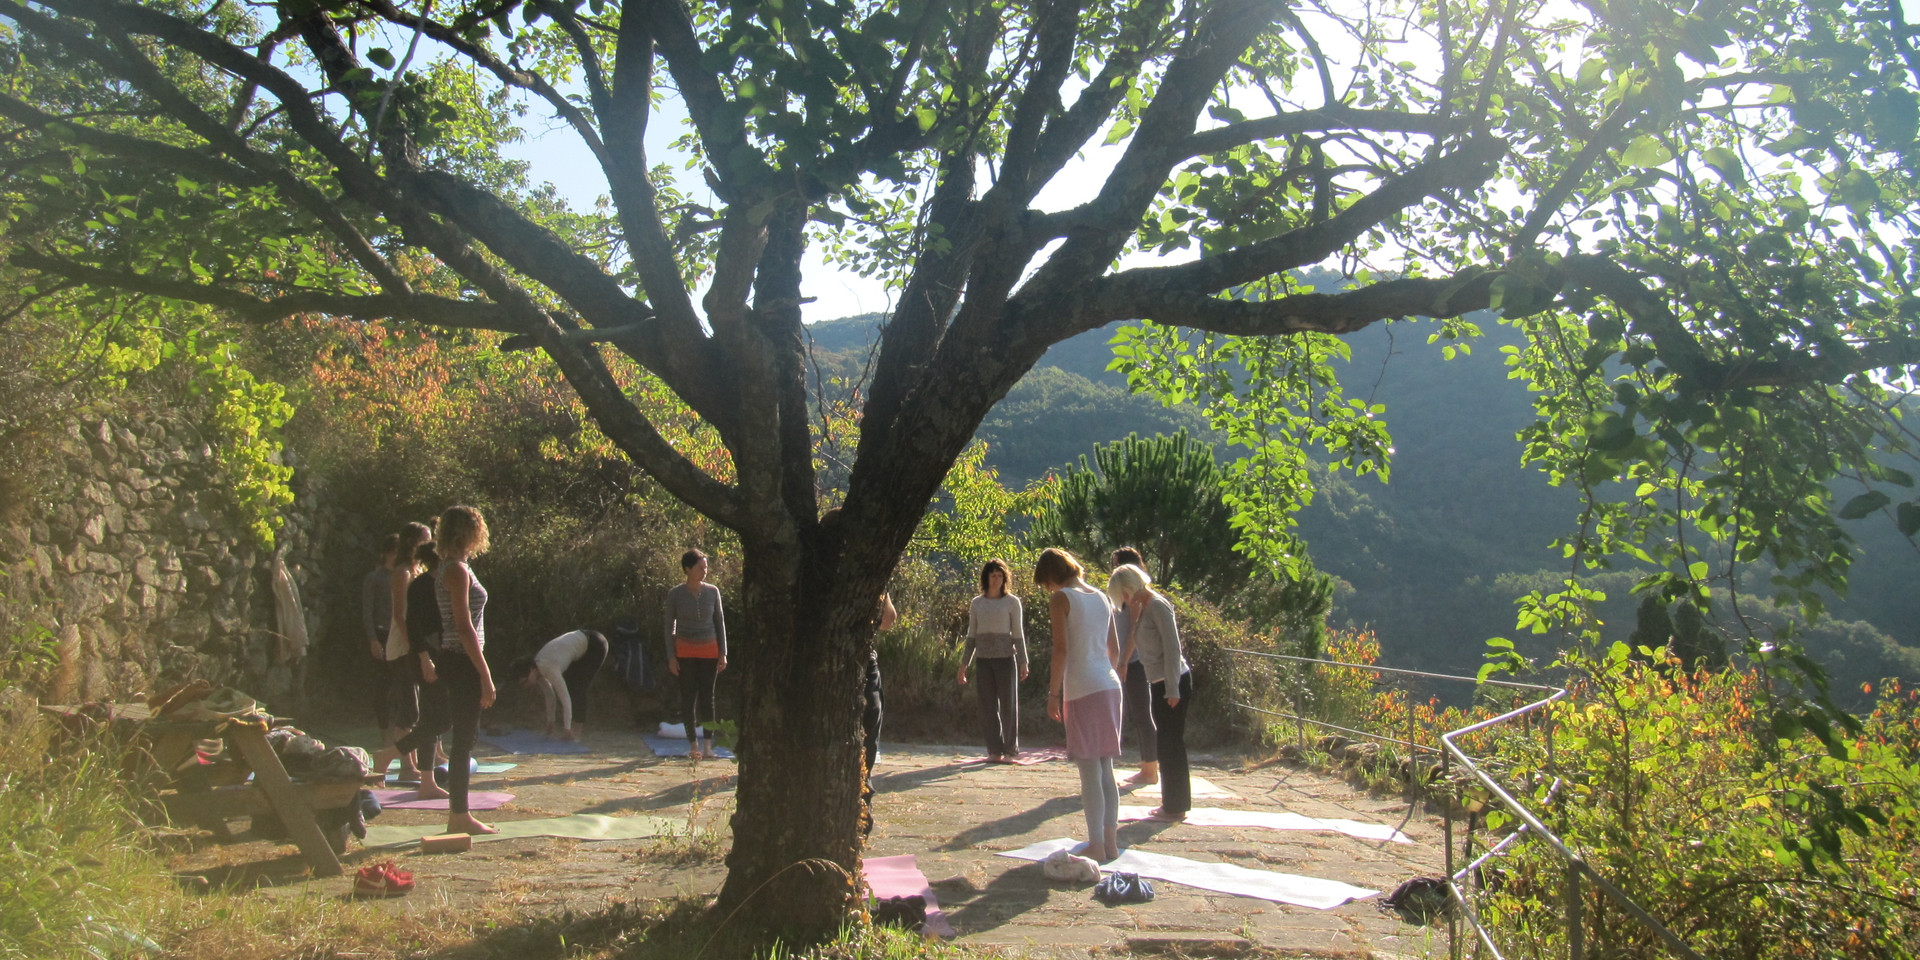 Kundalini Yoga 200h Training - The Tree